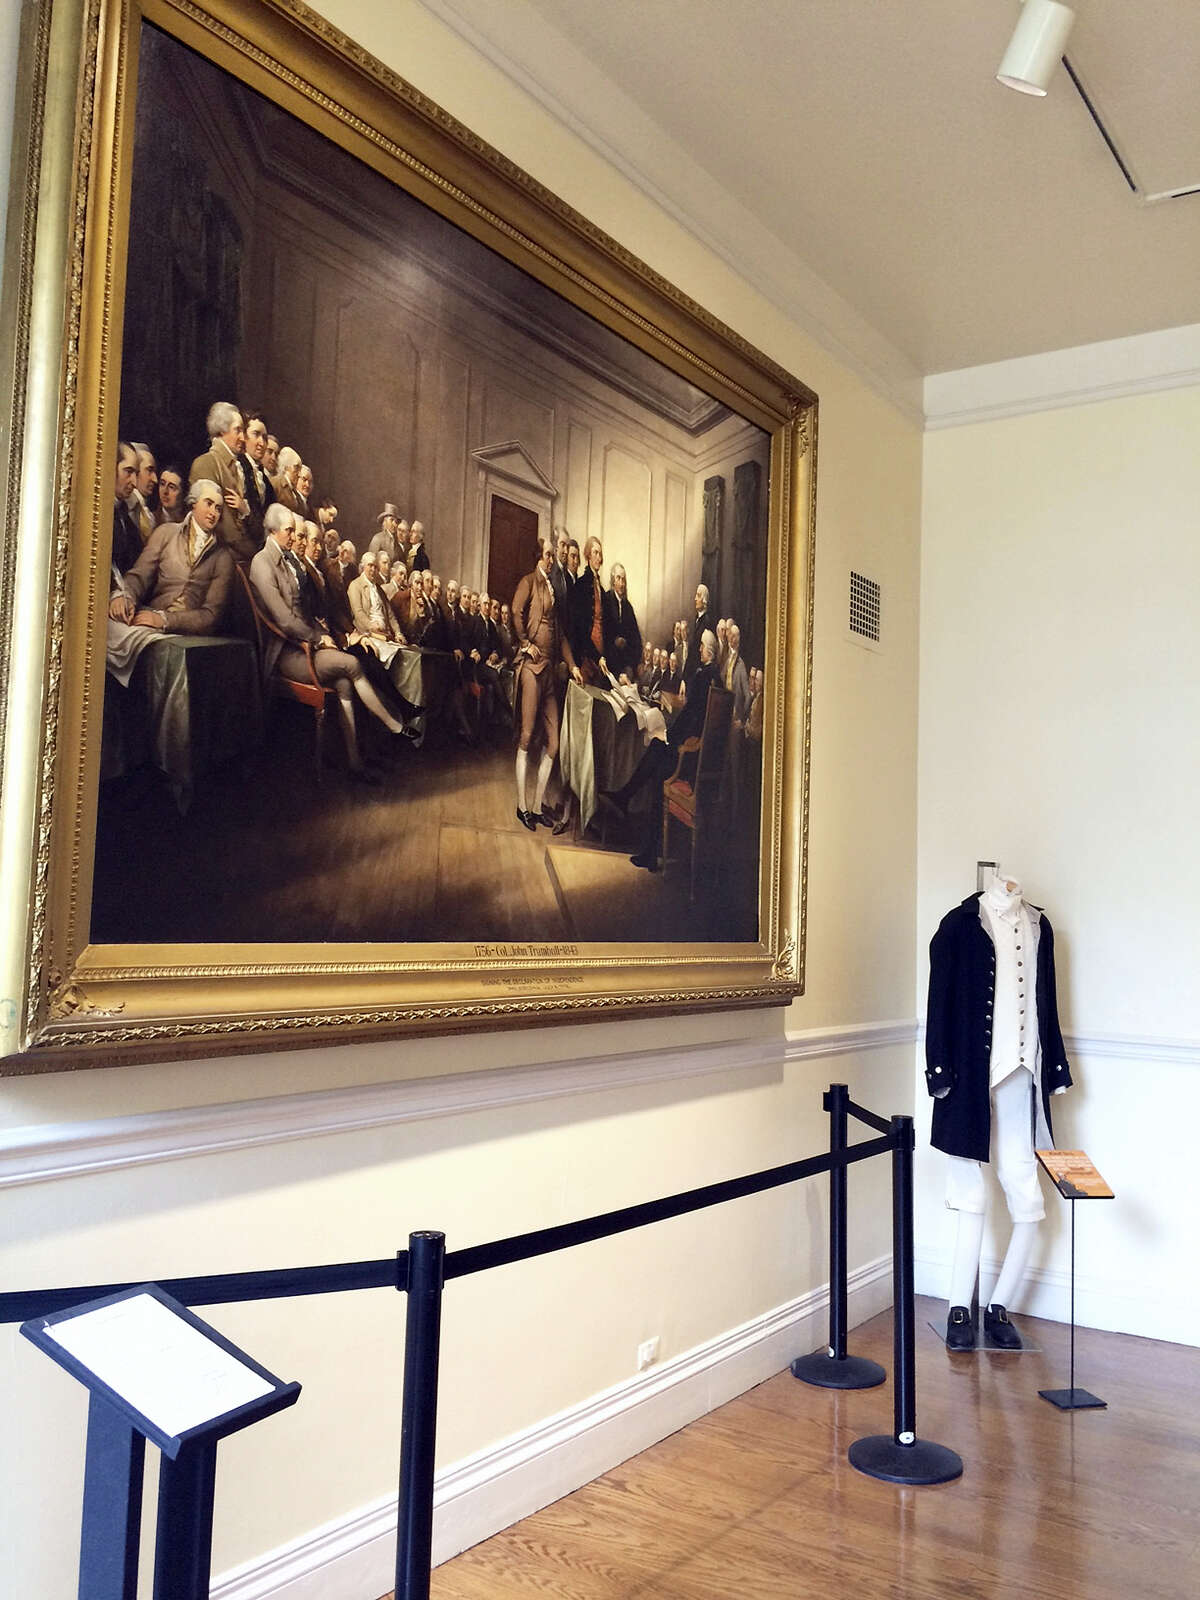 "An 1832 oil painting by John Trumbull, ""The Declaration of Independence, July 4, 1776,"" hangs inside the former executive branch offices of the Old State House in Hartford. A larger version of the painting hangs in the U.S. Capitol Rotunda. The fate of the 220-year-old historic landmark is uncertain after state lawmakers transferred responsibility for the property to the state's environmental agency, which is struggling to cover millions of dollars in budget cuts."